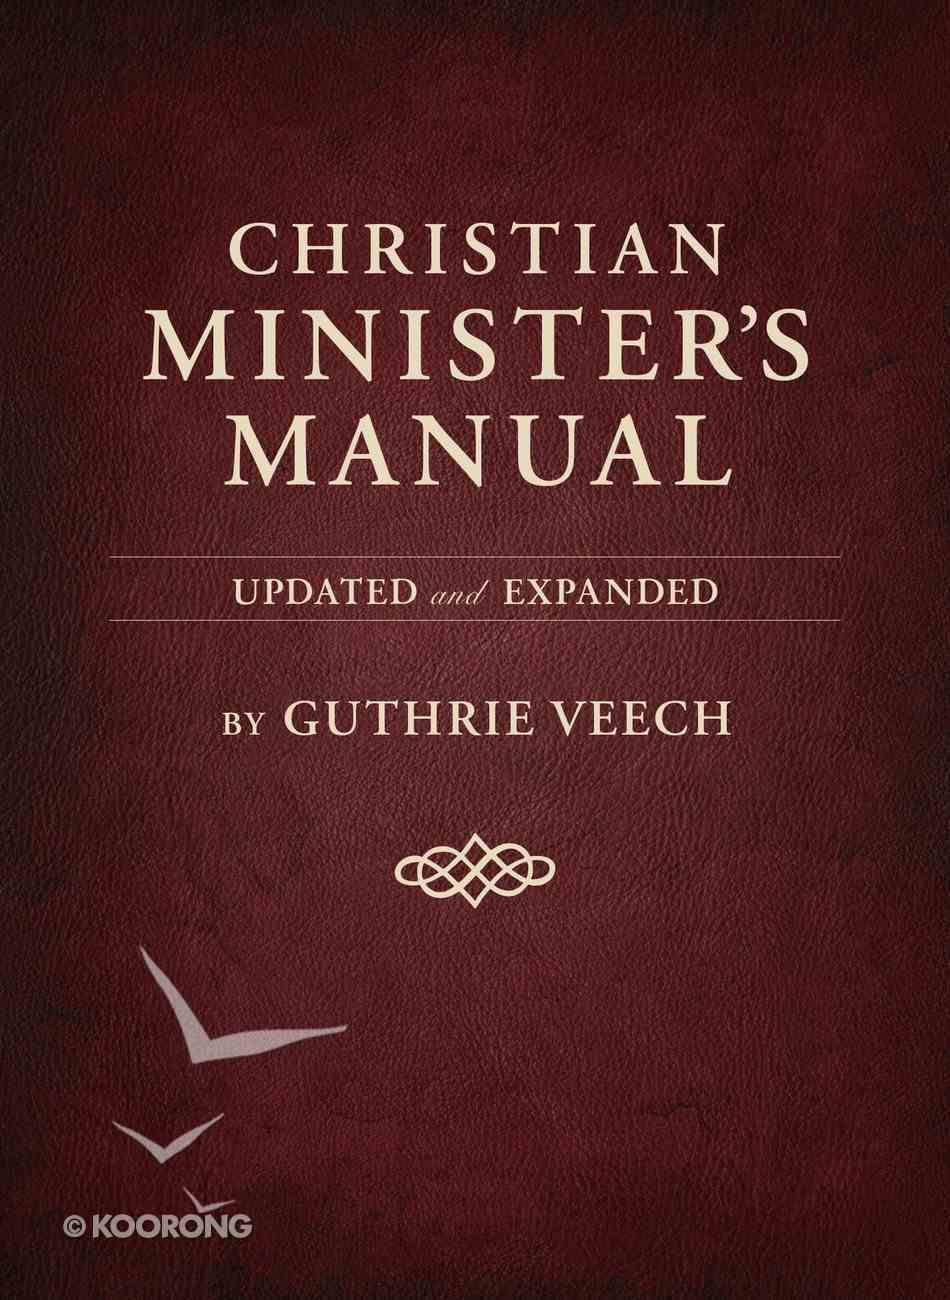 Christian Minister's Manual (And Expanded Deluxe Edition) eBook